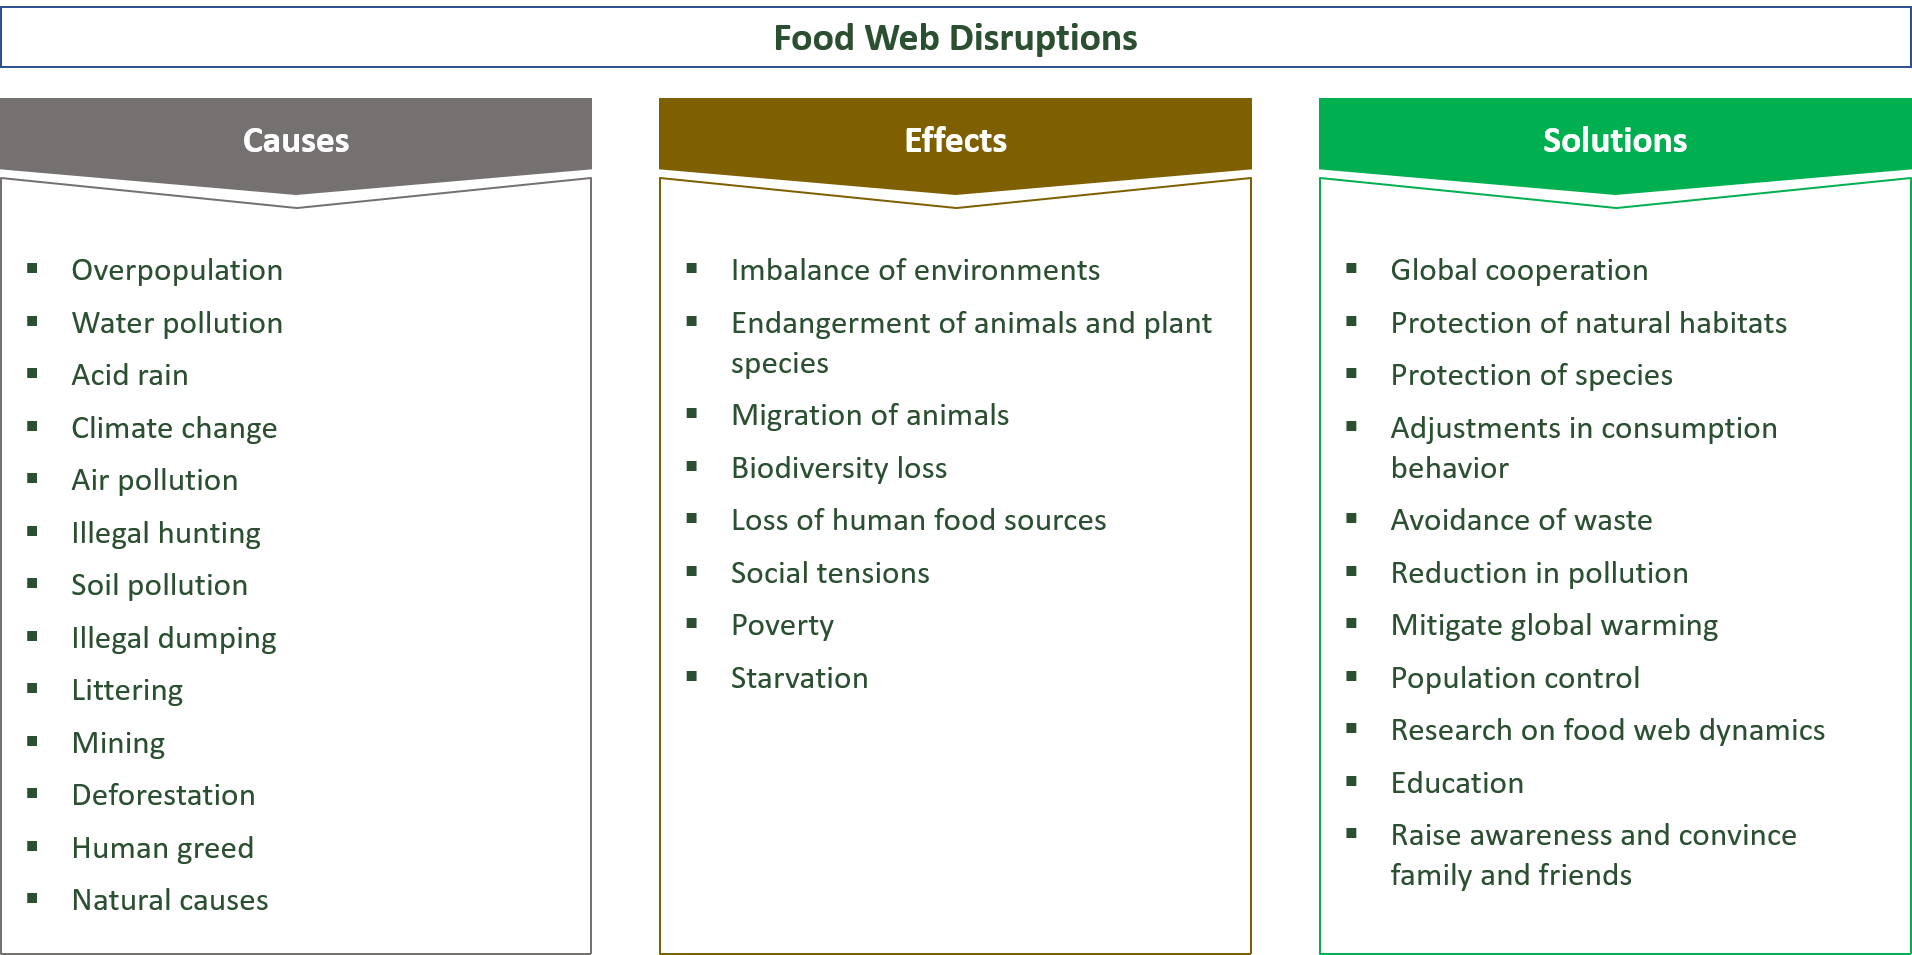 causes, effects, solutions for disruptions in the food web